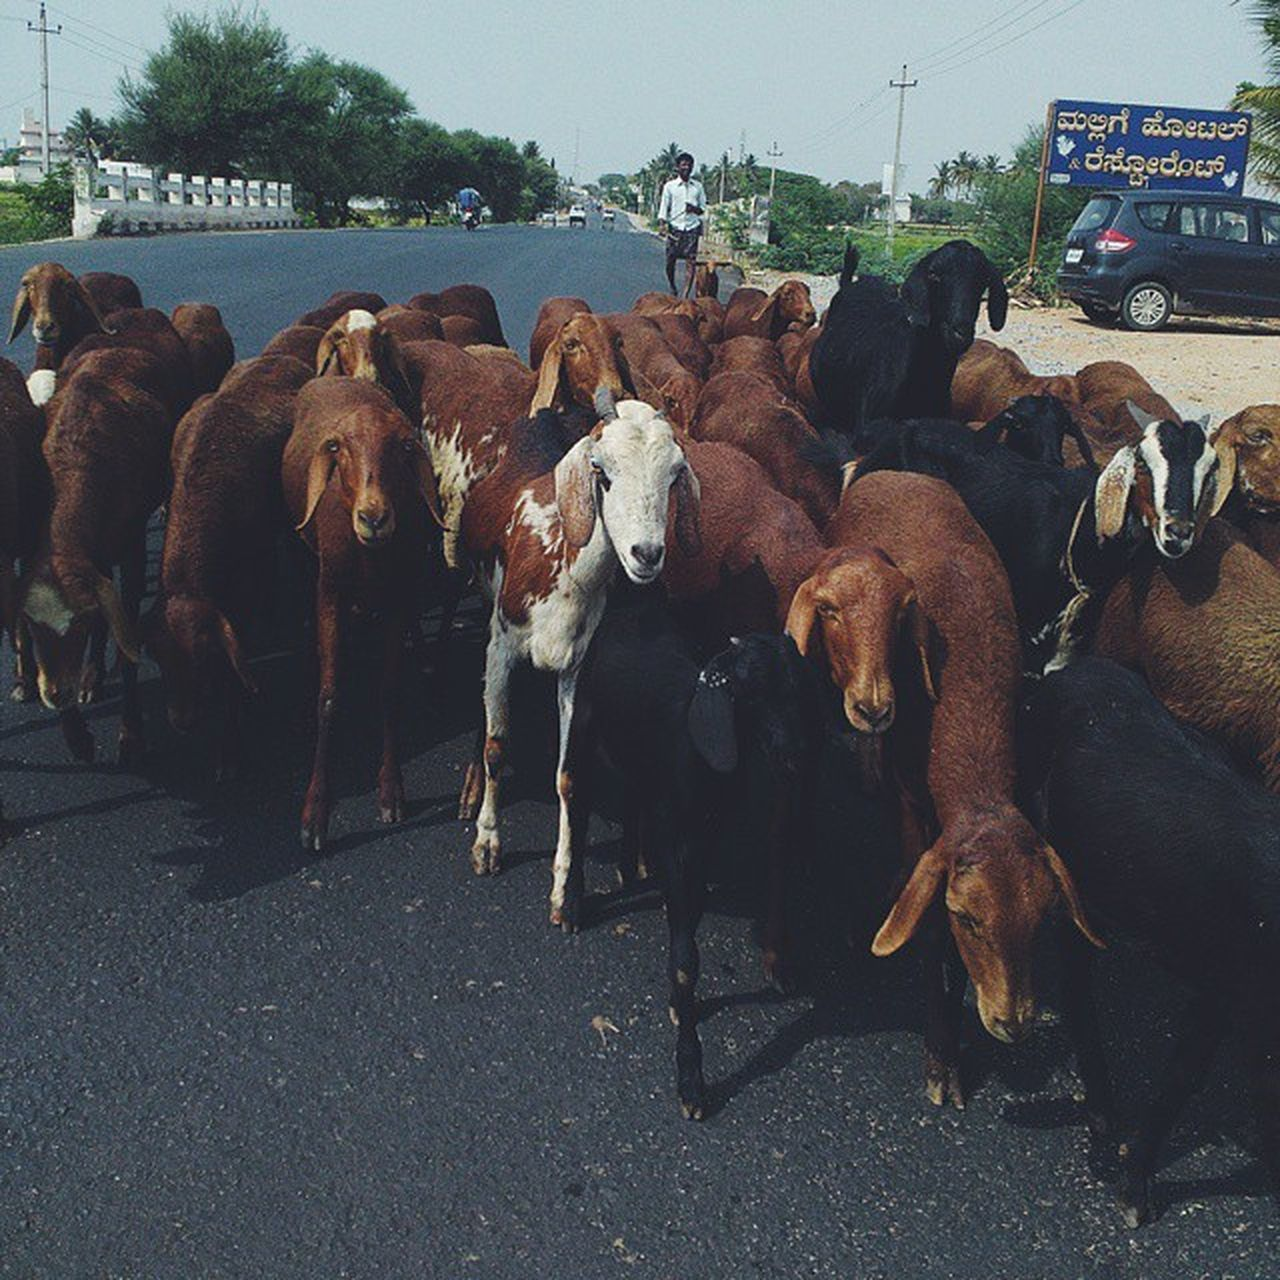 domestic animals, animal themes, livestock, mammal, large group of animals, day, outdoors, cow, standing, road, large group of people, nature, sky, people